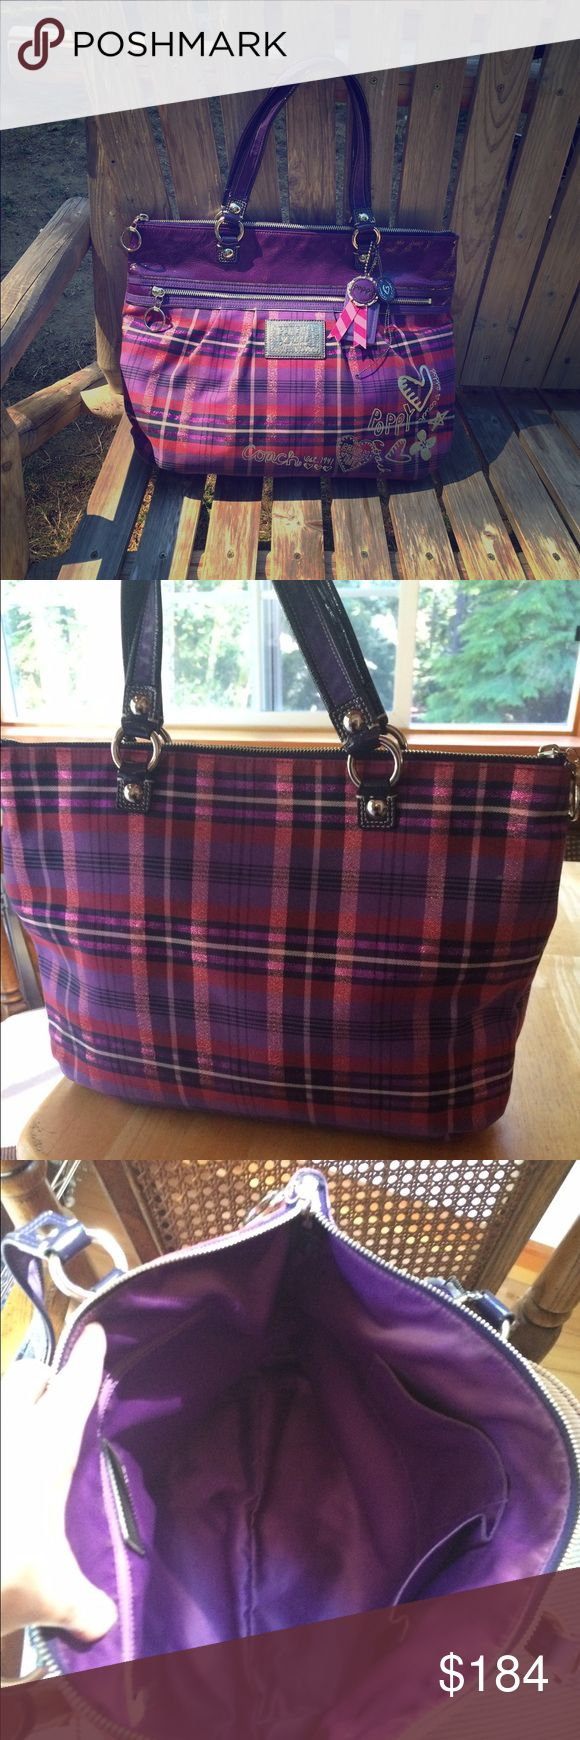 Pristine Coach Poppy Tartan Glam Tote 15886 Rare Coach Tarten Plaid Tote 15886 in Purple/Black/Red w/ Purple Patent Leather Handles & Trim! Stunning Bag! Tote is made of sturdy canvas and has the metallic glitter graphics & logo Its in pristine condition! EUC This Tote is lined in purple sateen, 1 zip, multiple slip pockets, the front has a full size zip pocket, 3 charms! Very hard to find in this condition!measures 17 X 13 X 5 Coach Bags Totes